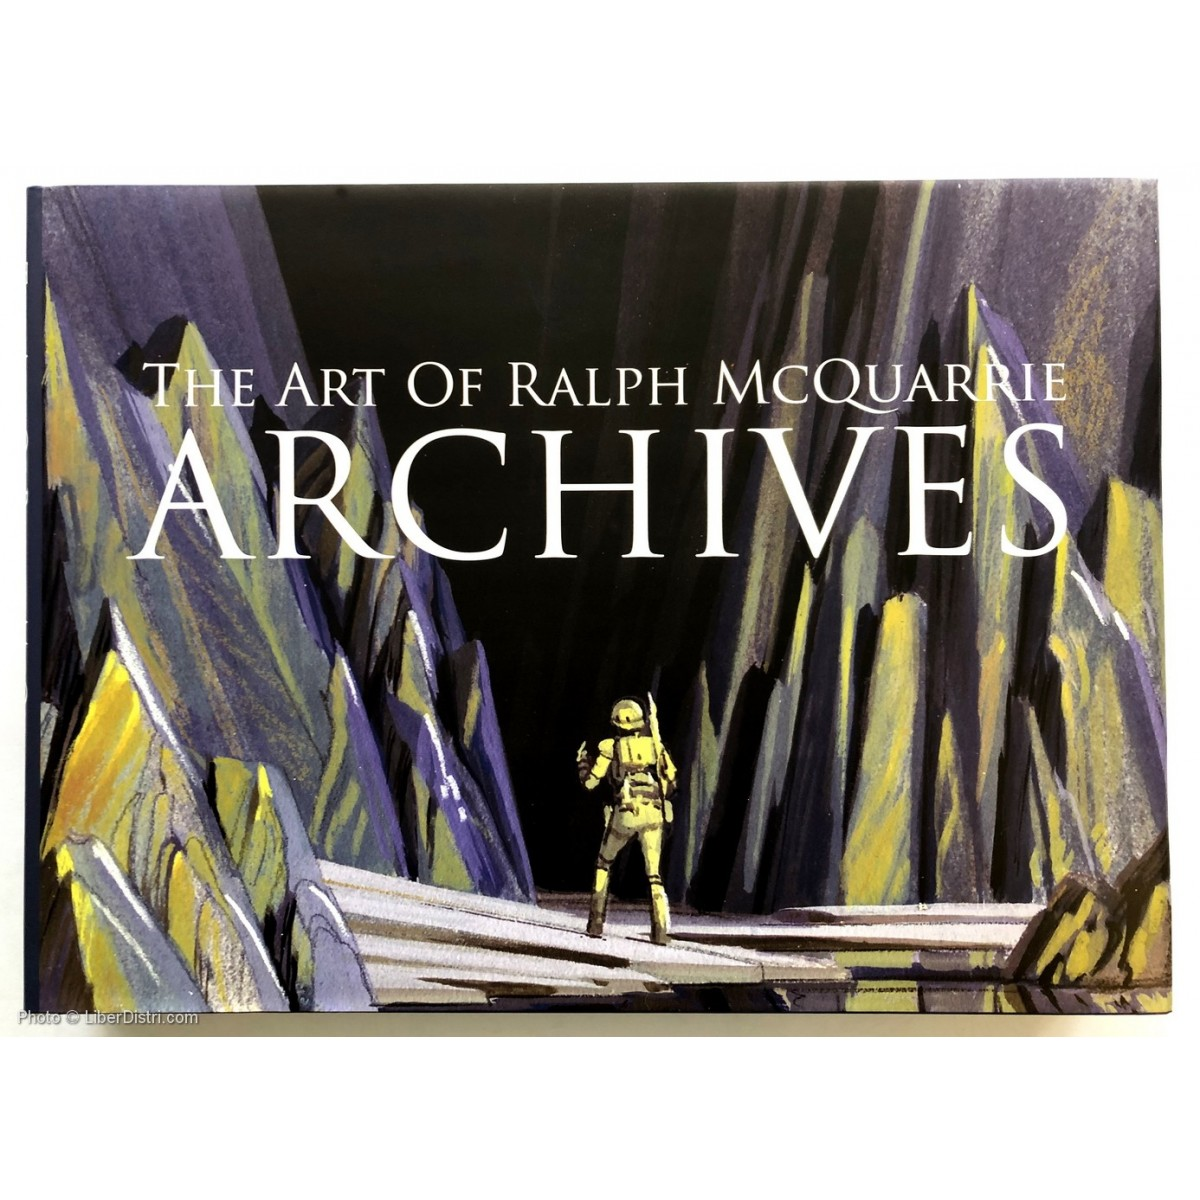 The Art of Ralph McQuarrie: Archives - Limited Edition